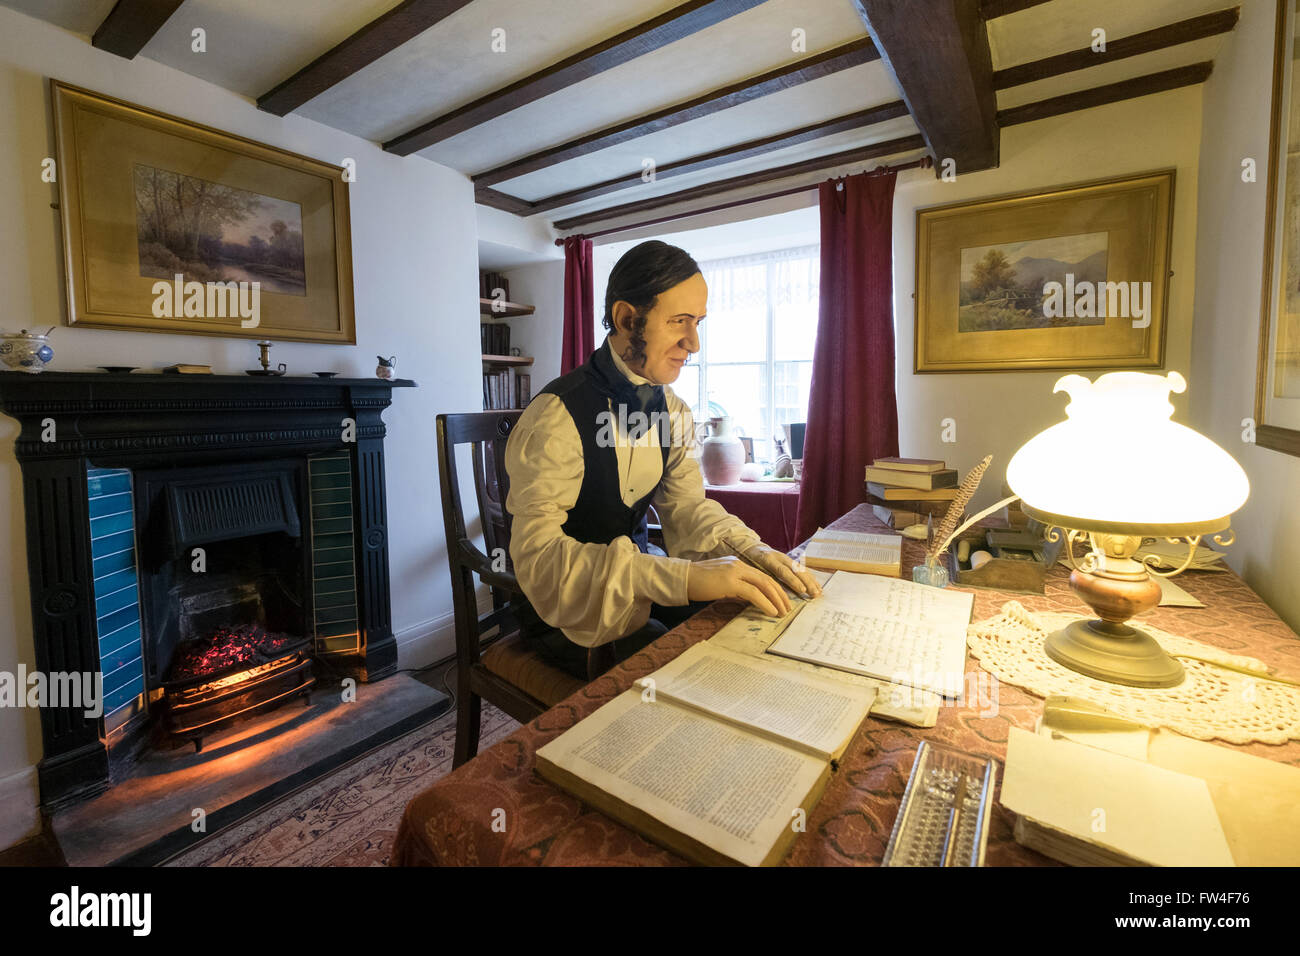 Model of Author Charles Kingsley writing in his study at the Kingsley Museum in Clovelly village, Devon - Stock Image